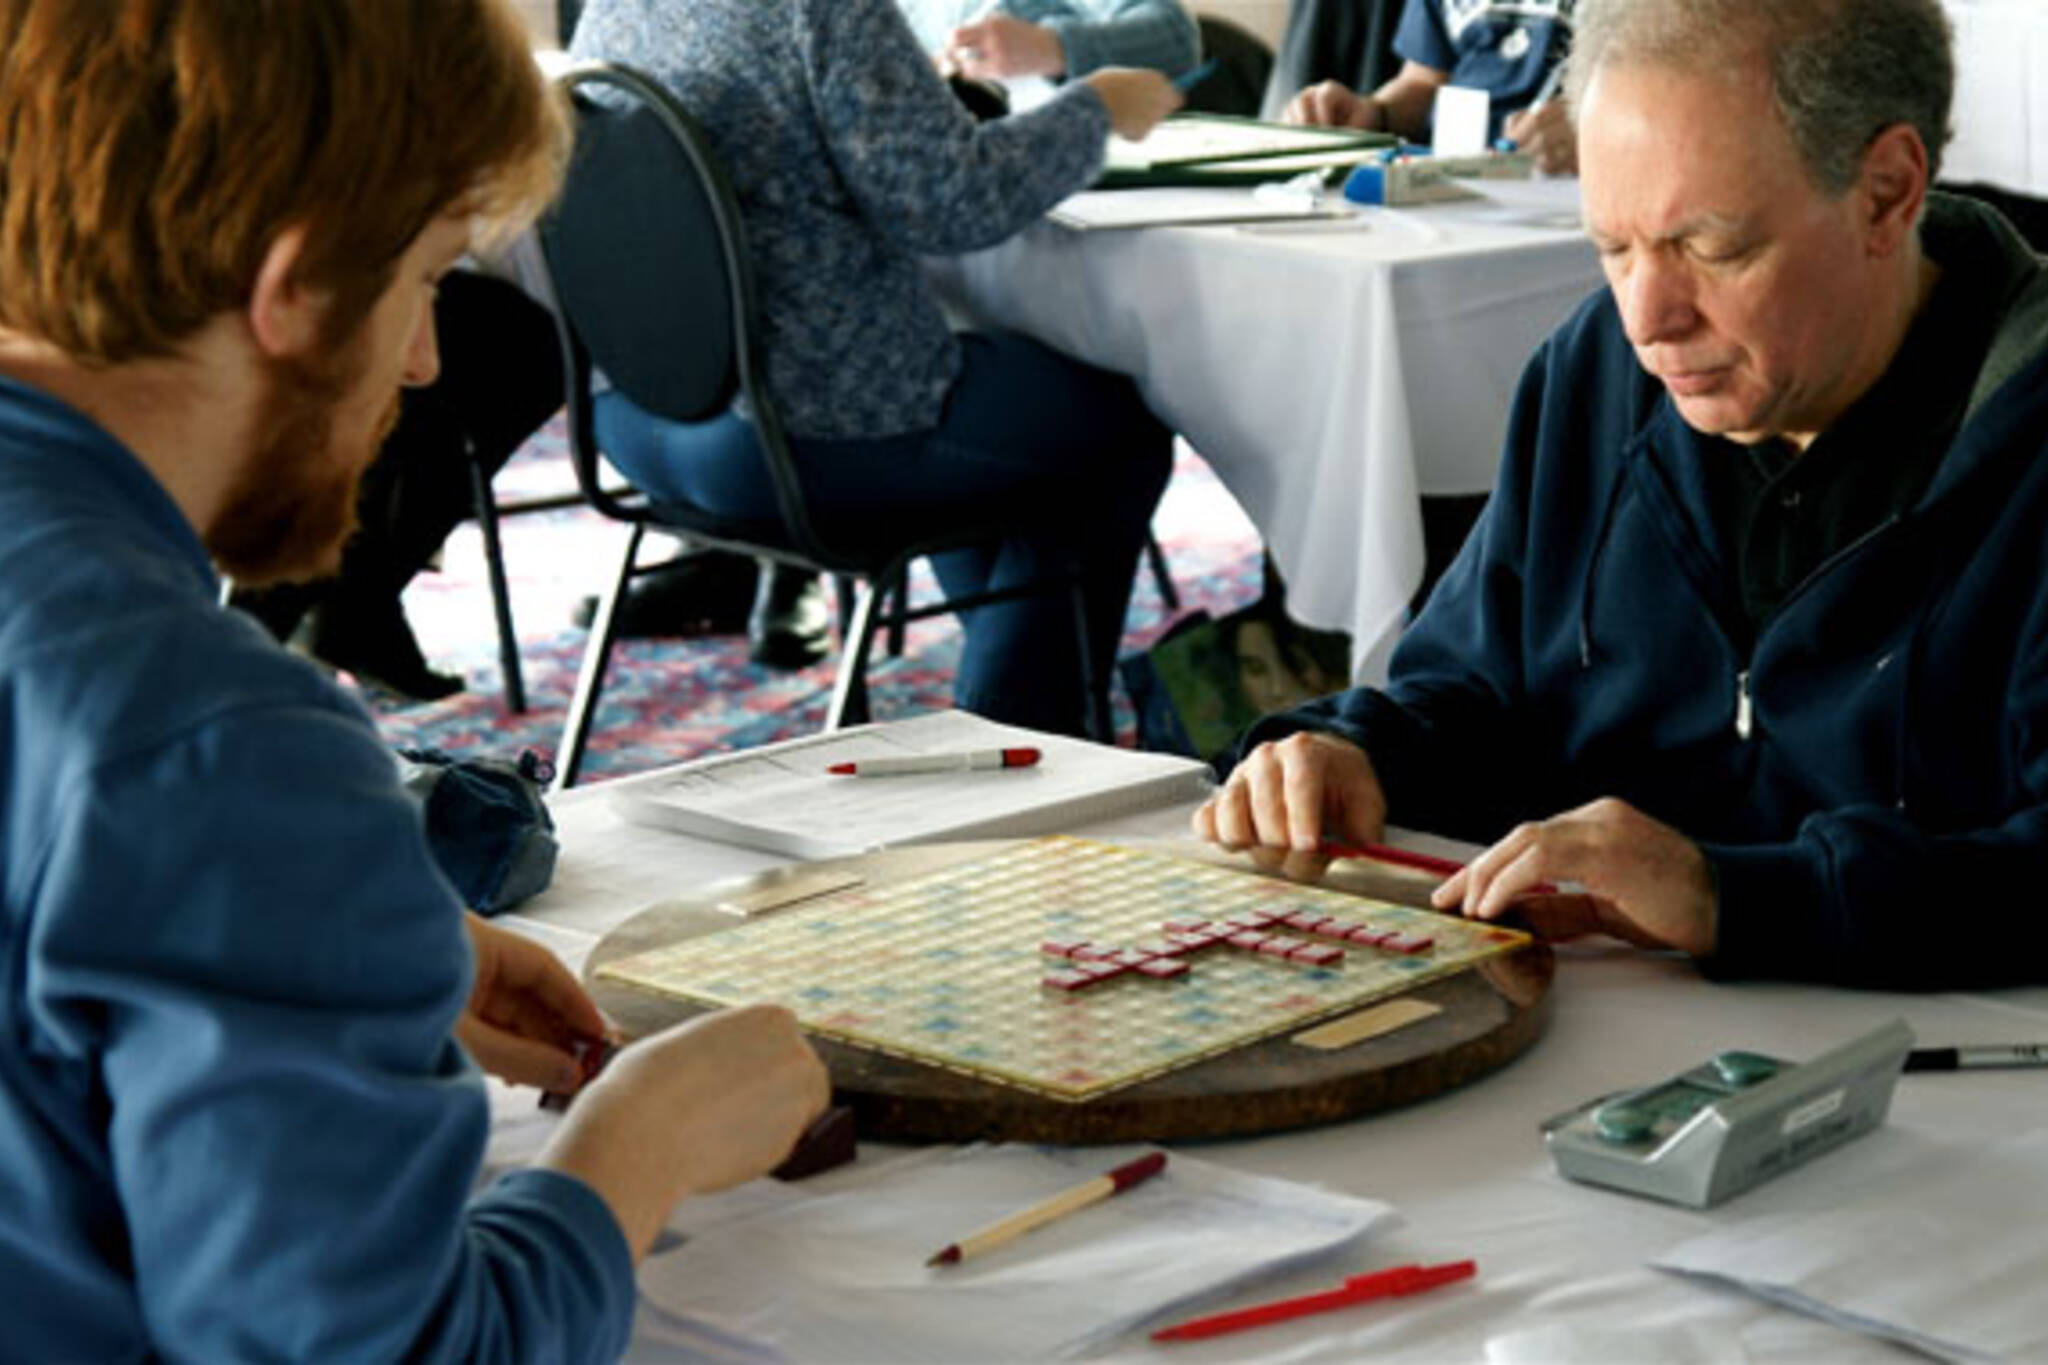 Scrabble masters Adam Logan and Joel Wapnick battle wits during the Kingston Cup tournament